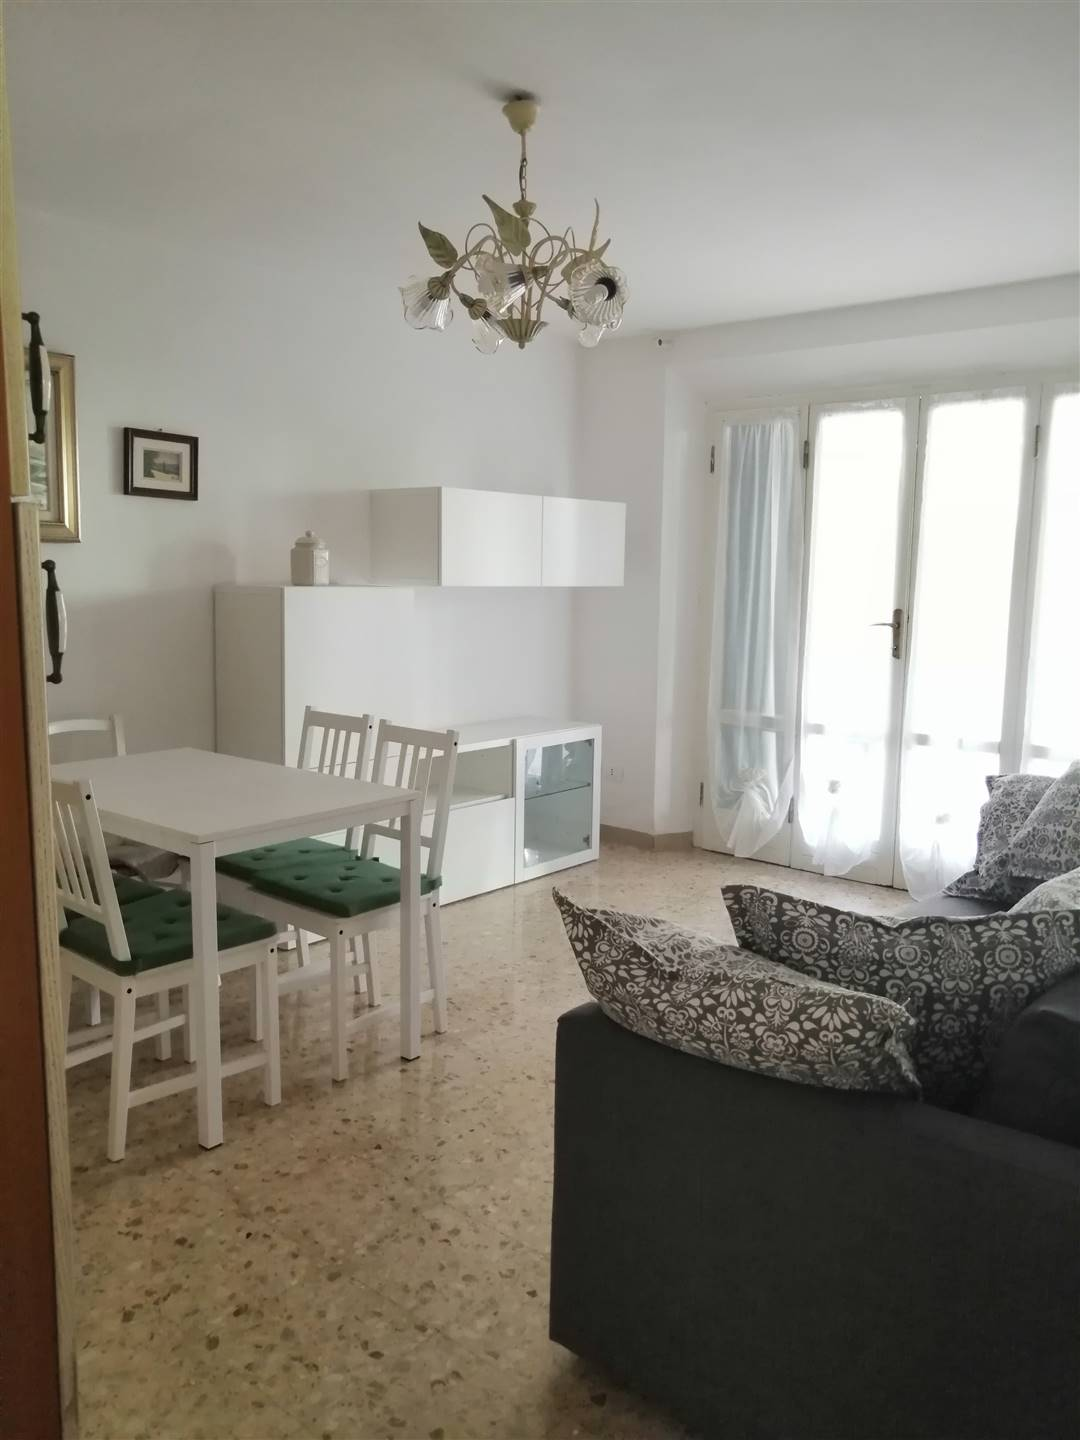 PORTA A LUCCA, PISA, Independent Apartment for rent of 50 Sq. mt., Excellent Condition, Heating Individual heating system, Energetic class: G, Epi: 2